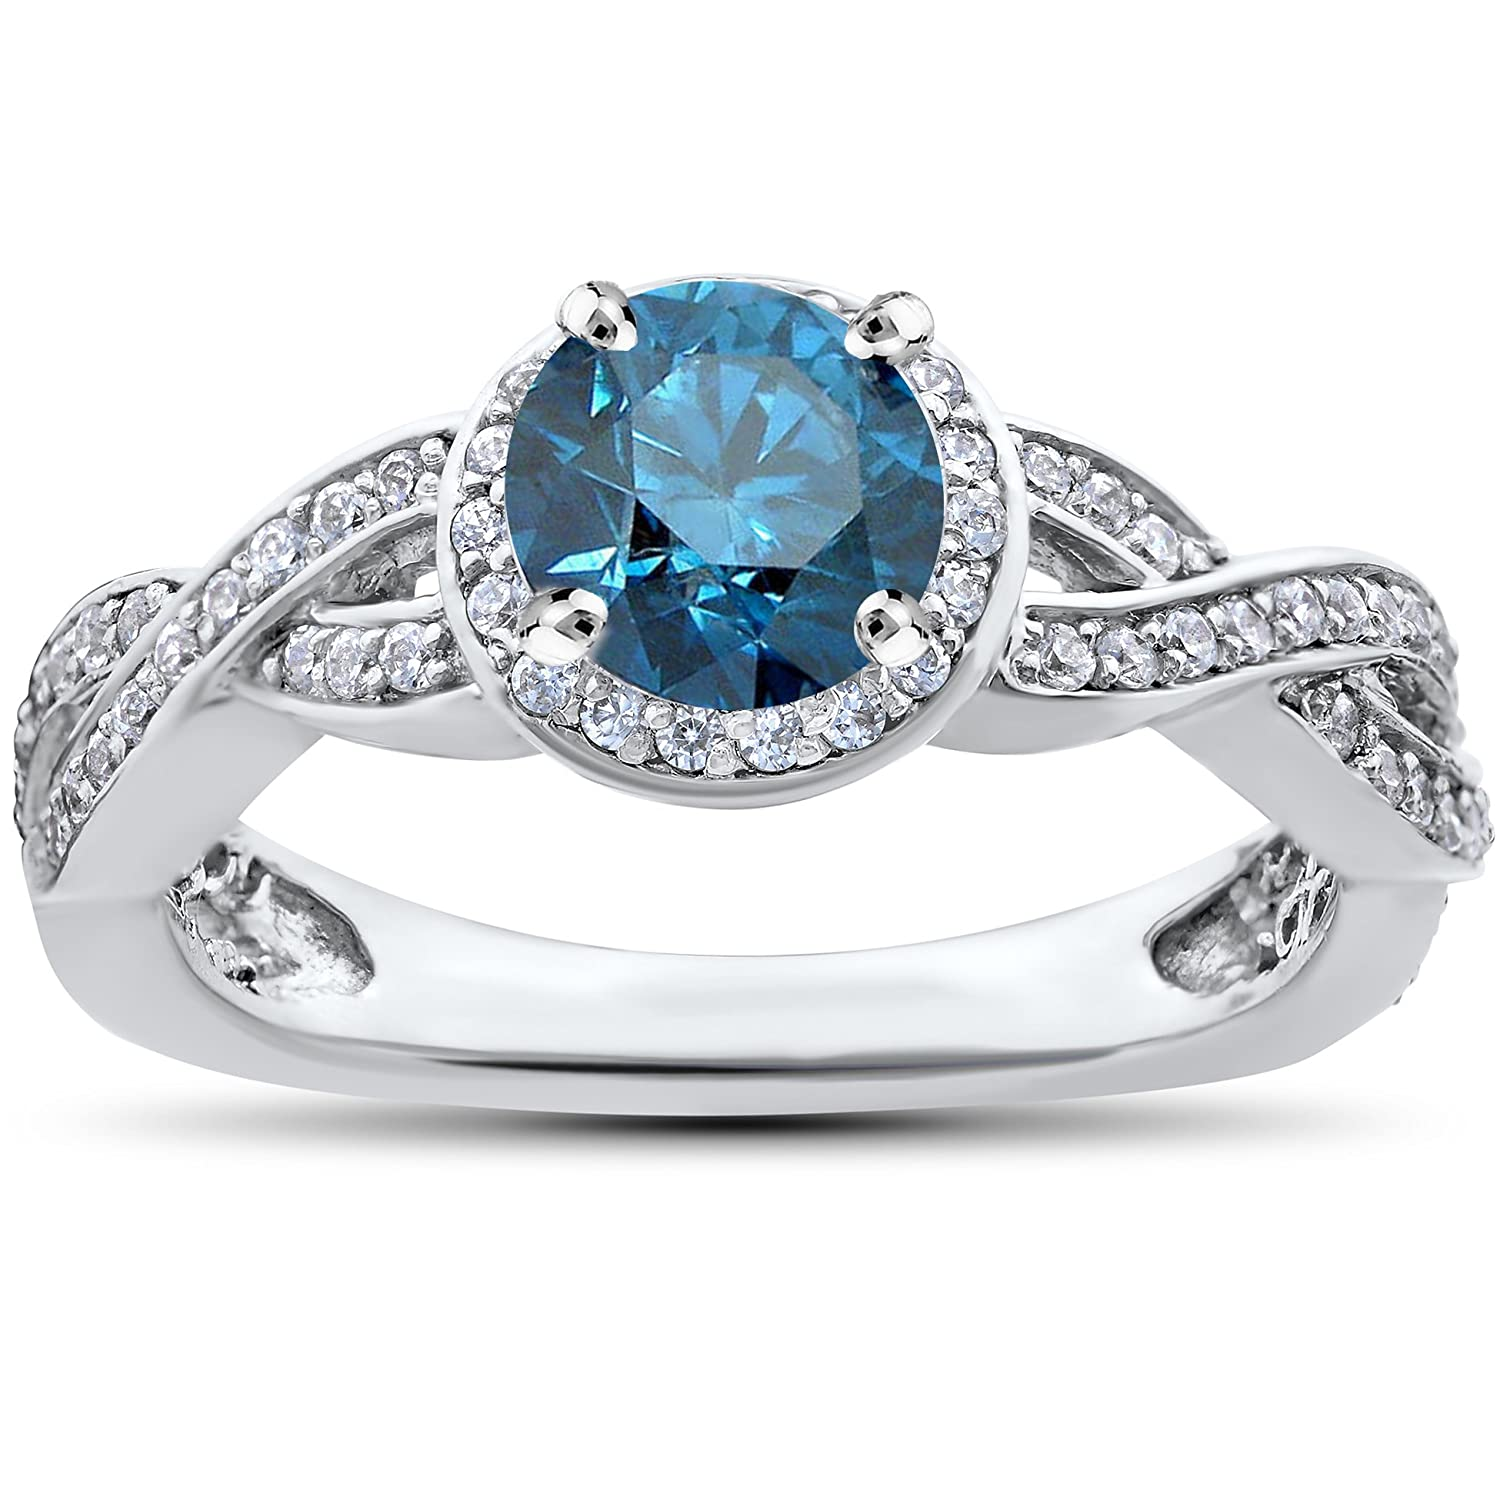 engagement london shutterstock dark emerald diamond sapphires blue rings exchange